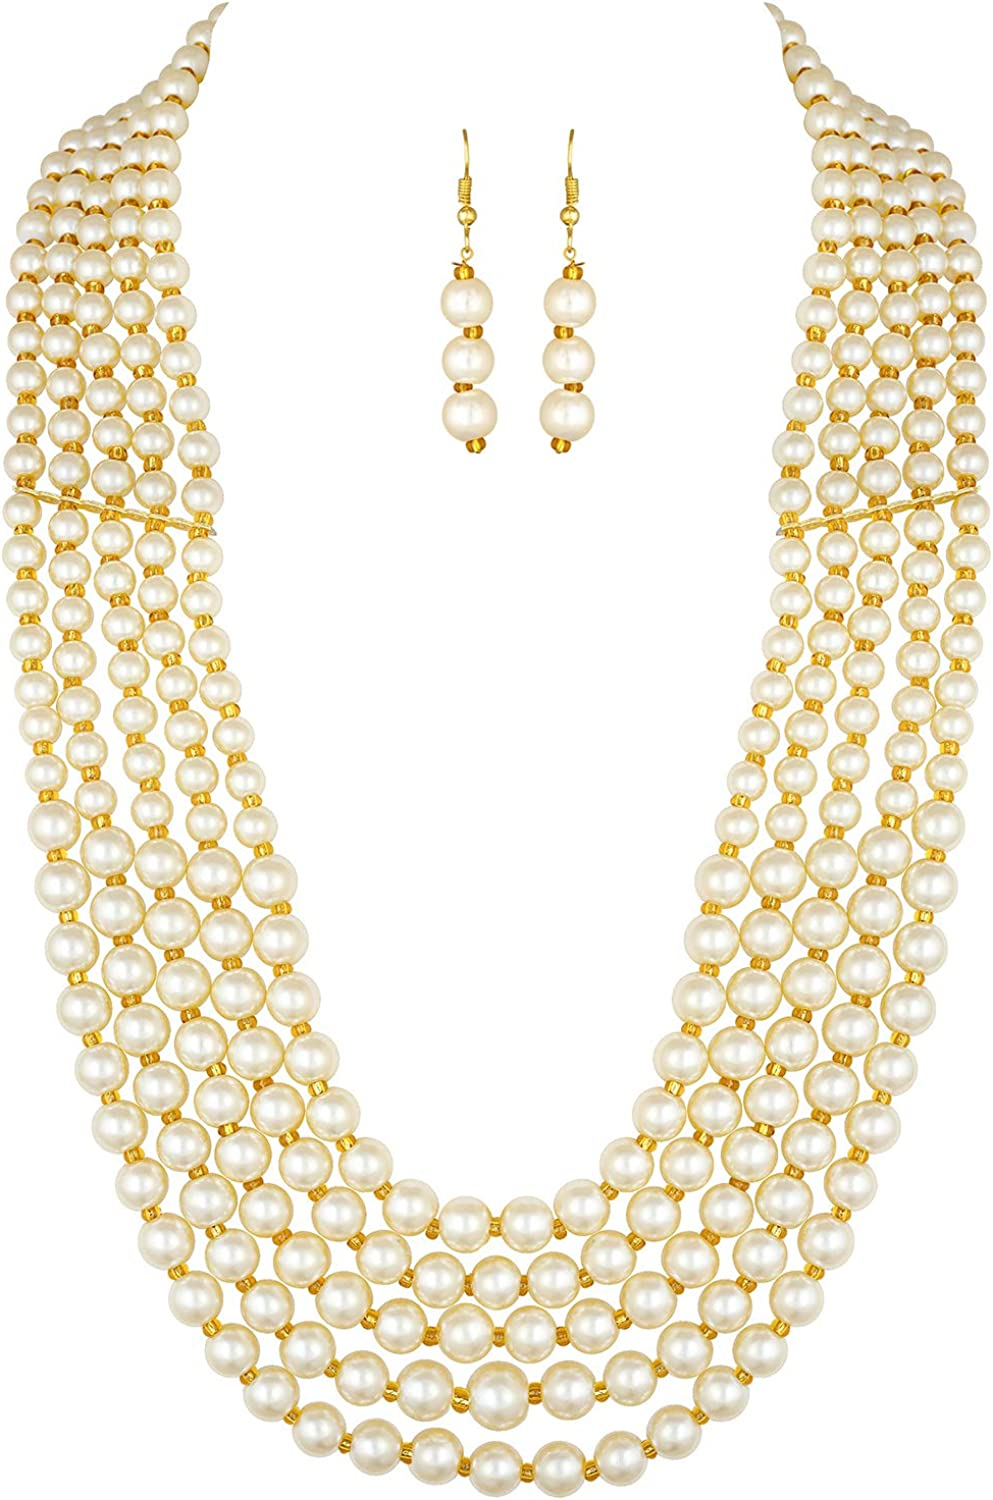 Aheli Ethnic Multi-Strand Pearl Long supreme with Earrings Max 77% OFF Drop Necklace